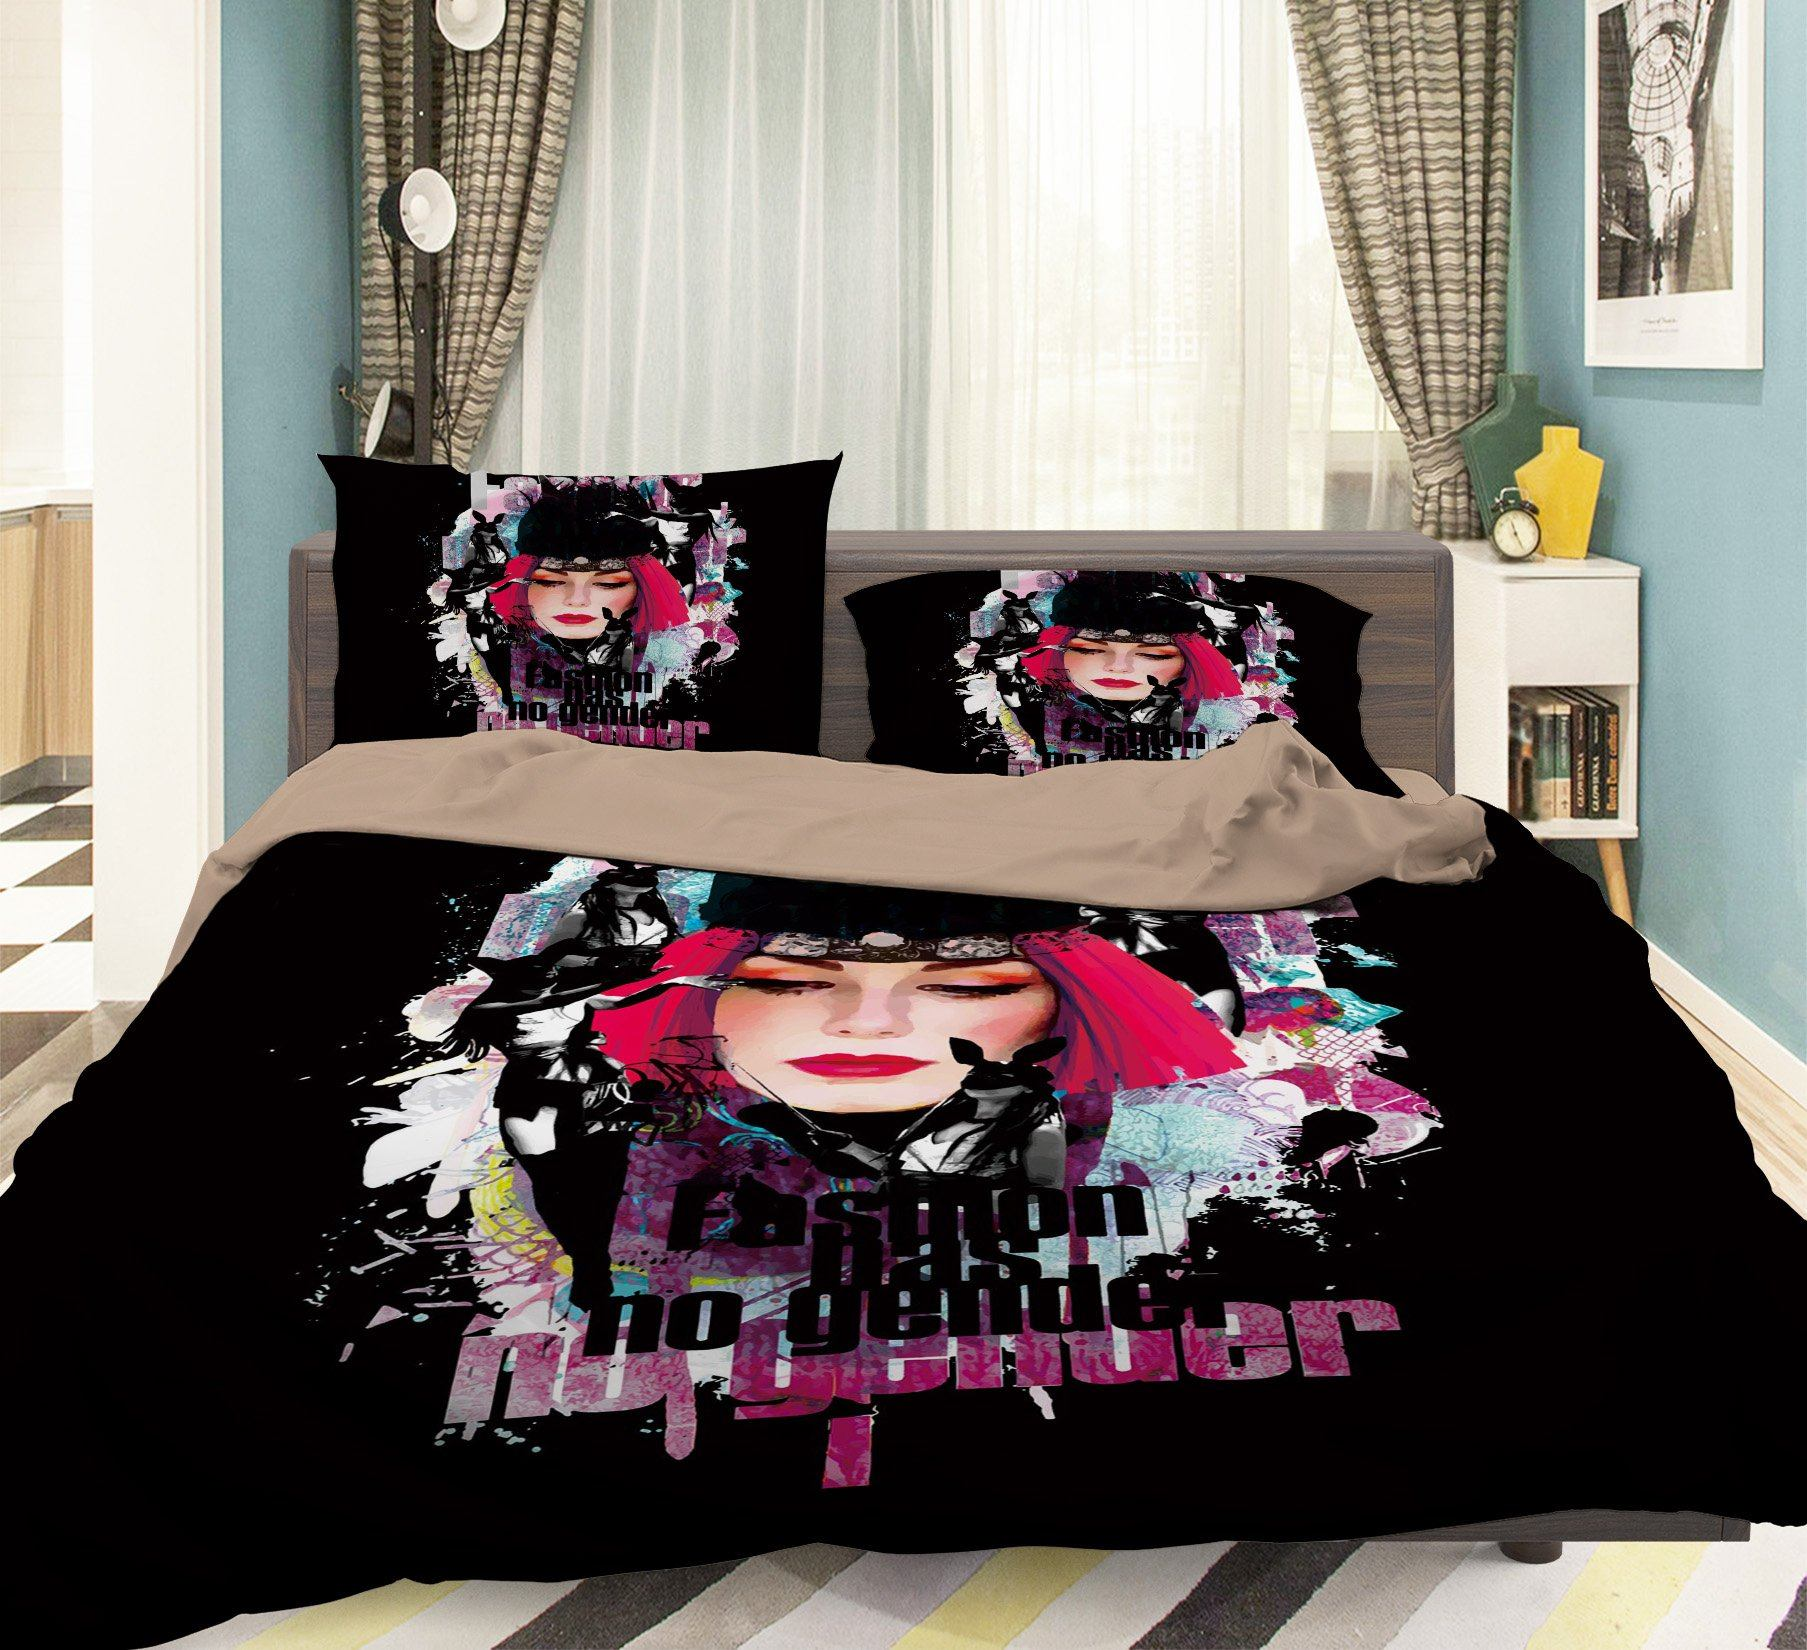 3D Woman Black Hat 047 Bed Pillowcases Quilt Wallpaper AJ Wallpaper